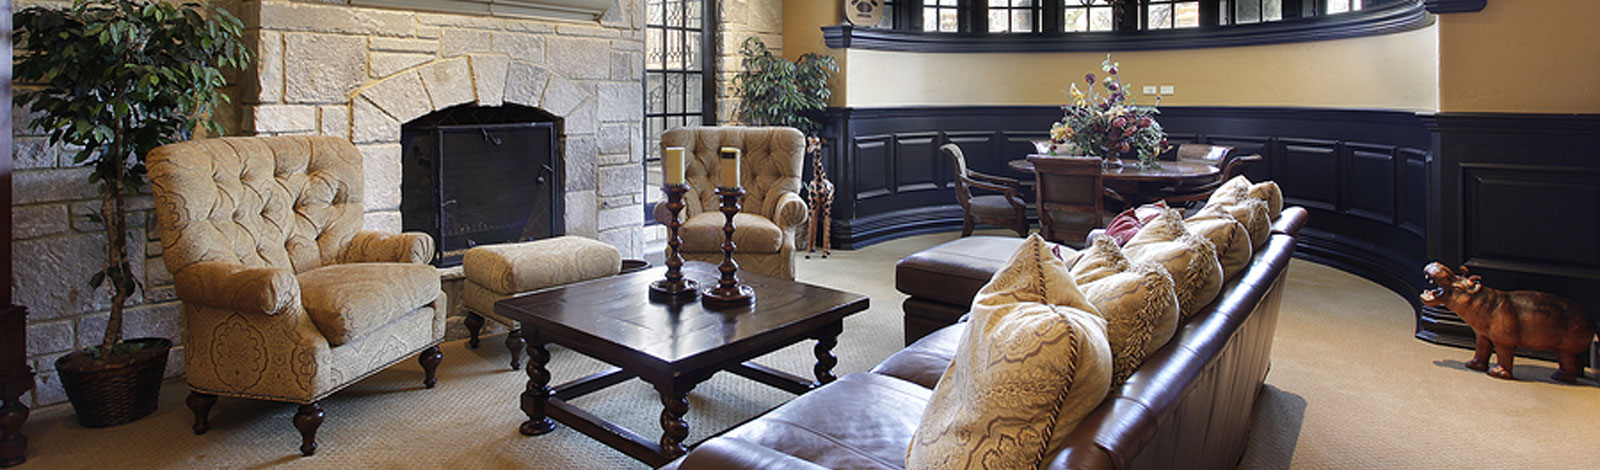 Basement in luxury home with stone fireplace